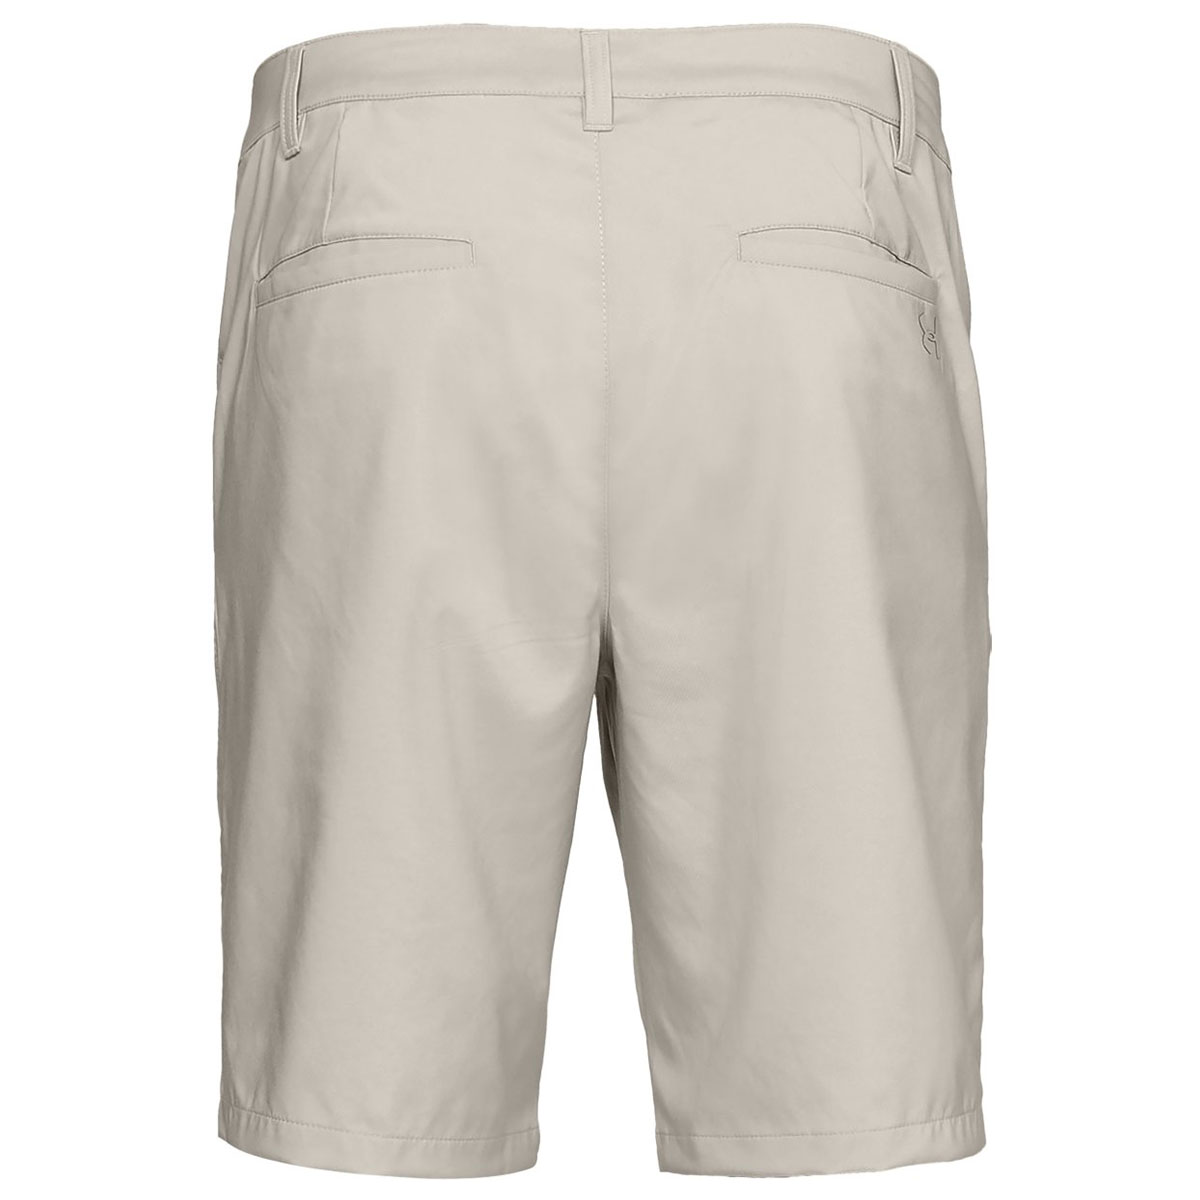 Under-Armour-Mens-EU-Tech-Stretch-Soft-Fitted-Golf-Shorts thumbnail 9